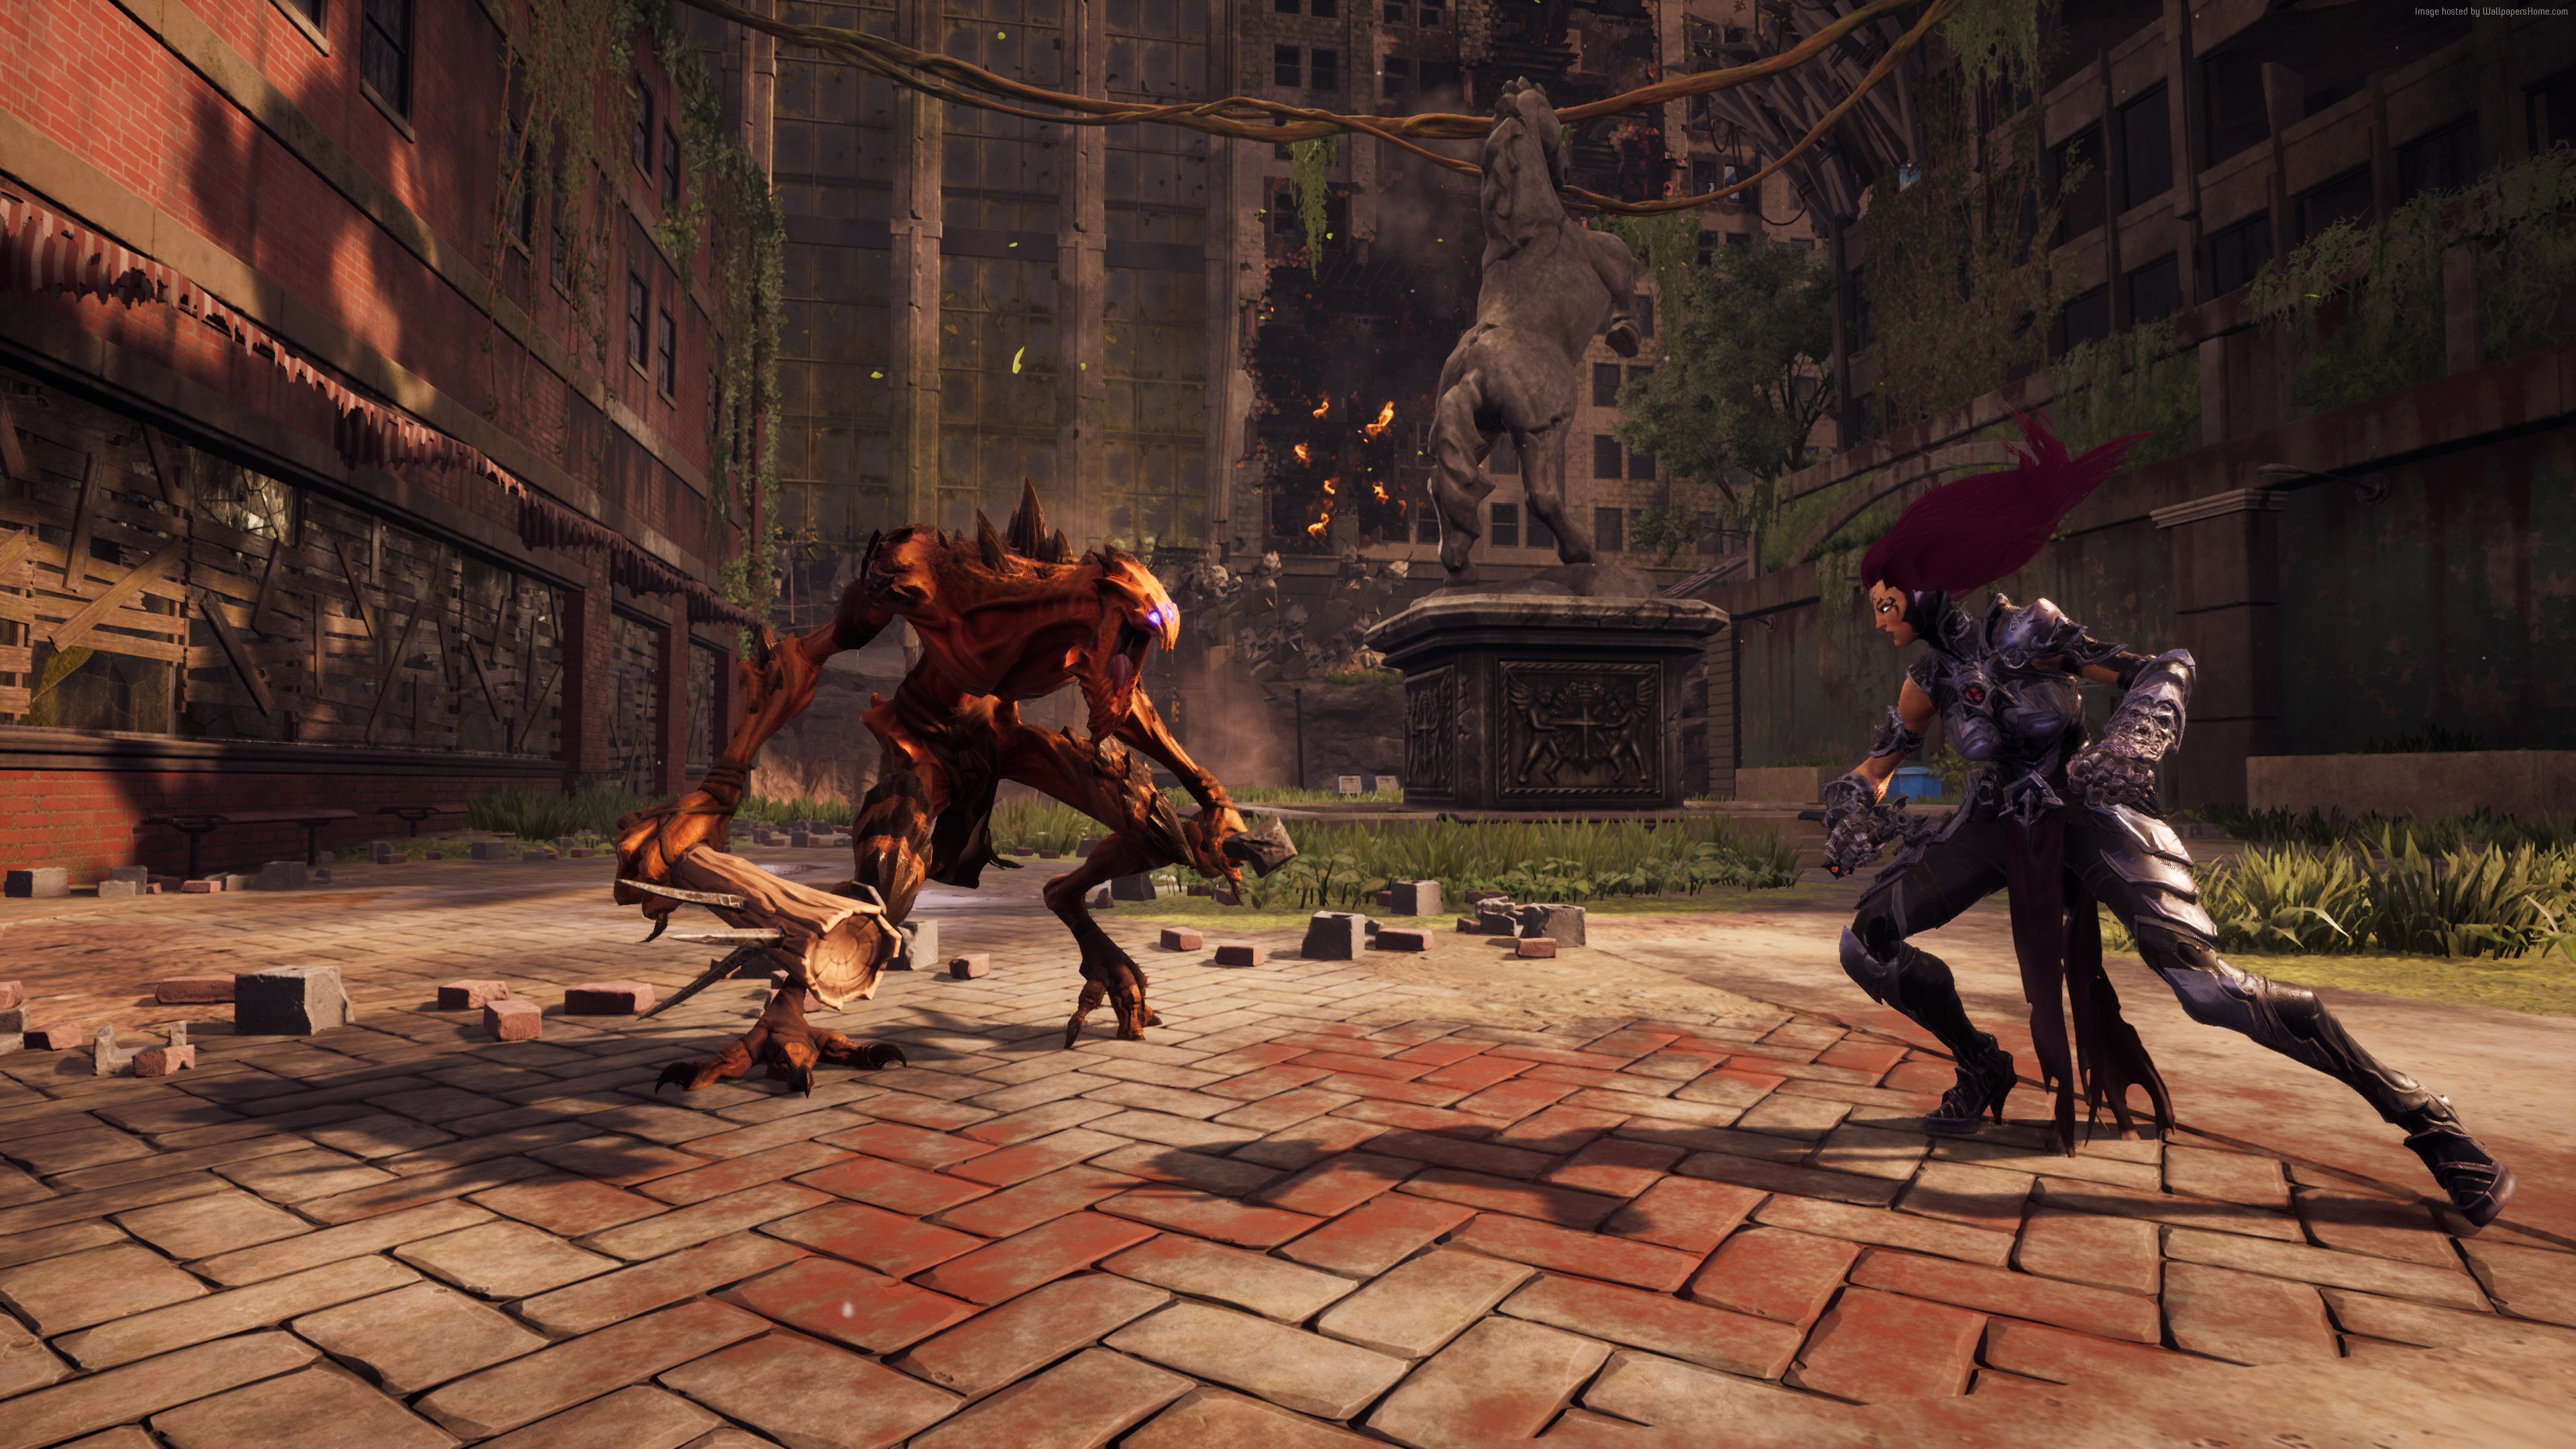 Darksiders 3 The Crucible , HD Wallpaper & Backgrounds